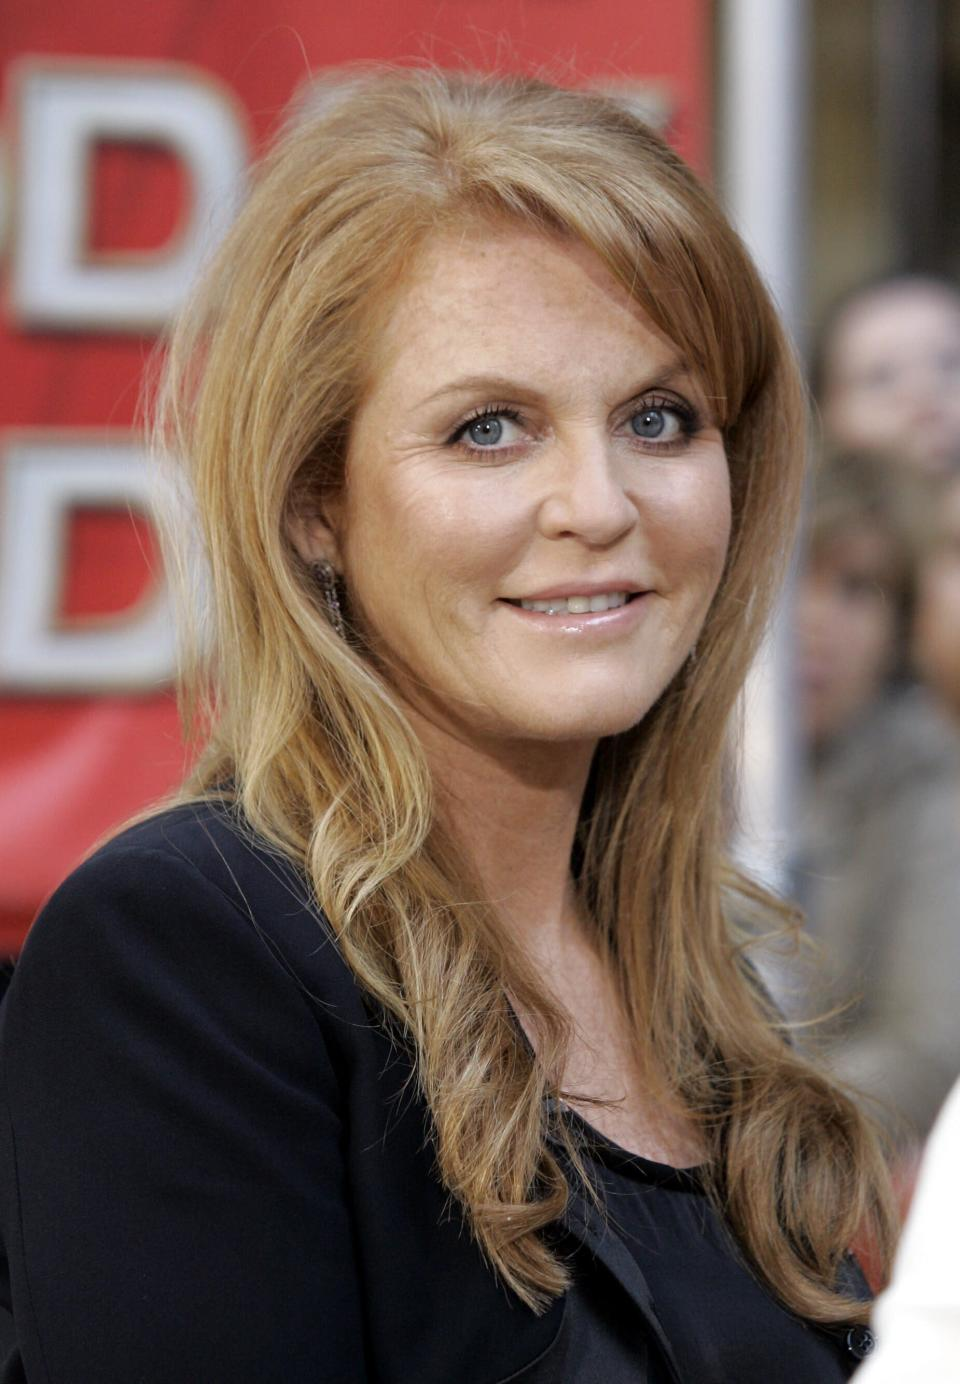 """FILE - In this Tuesday May 1, 2007 file photo, Sarah Ferguson, Britain's Duchess of York, appears on the NBC """"Today"""" television show in New York, during a segment about the Hearts & Hooves, a non-profit organization dedicated to providing healing and inspiration through meaningful encounters between humans and animals. Britain's royal family and television have a complicated relationship. The medium has helped define the modern monarchy: The 1953 coronation of Queen Elizabeth II was Britain's first mass TV spectacle. Since then, rare interviews have given a glimpse behind palace curtains at the all-too-human family within. (AP Photo/Richard Drew, File)"""